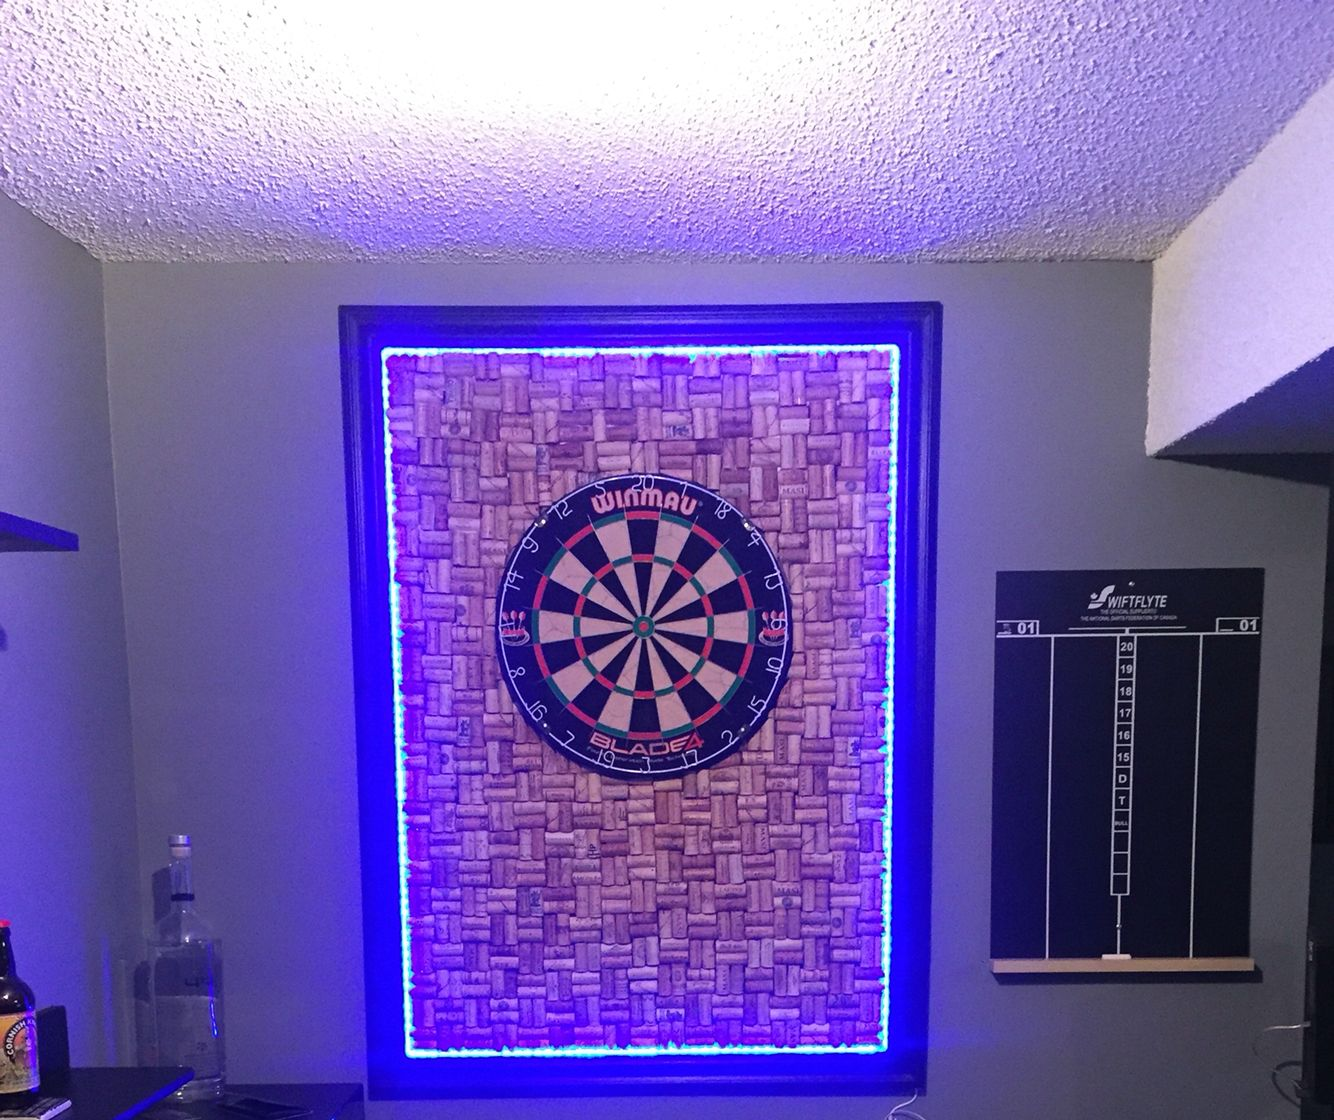 The Hubby Finally Finished His Latest ManCave Project. It